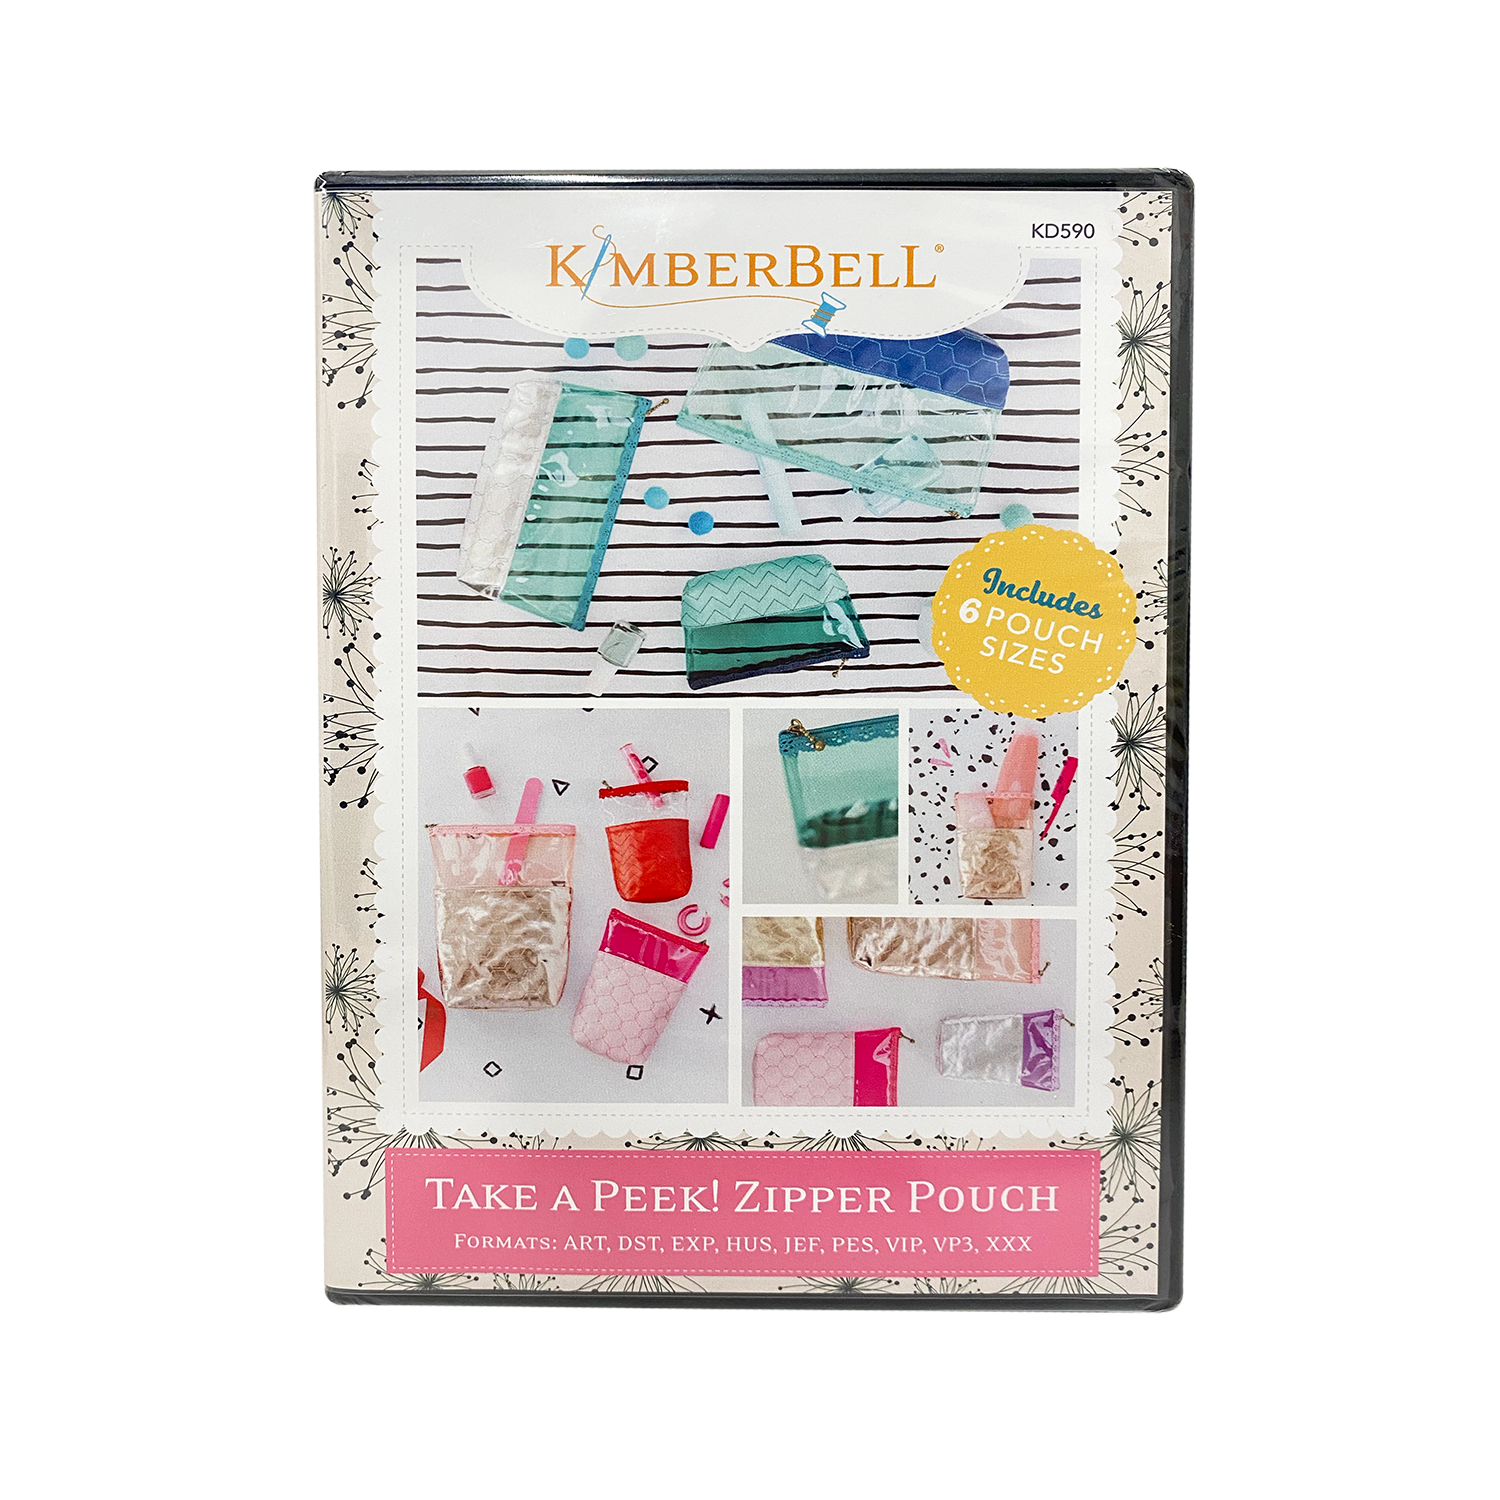 Kimberbell: Take a Peek! Zipper Pouches